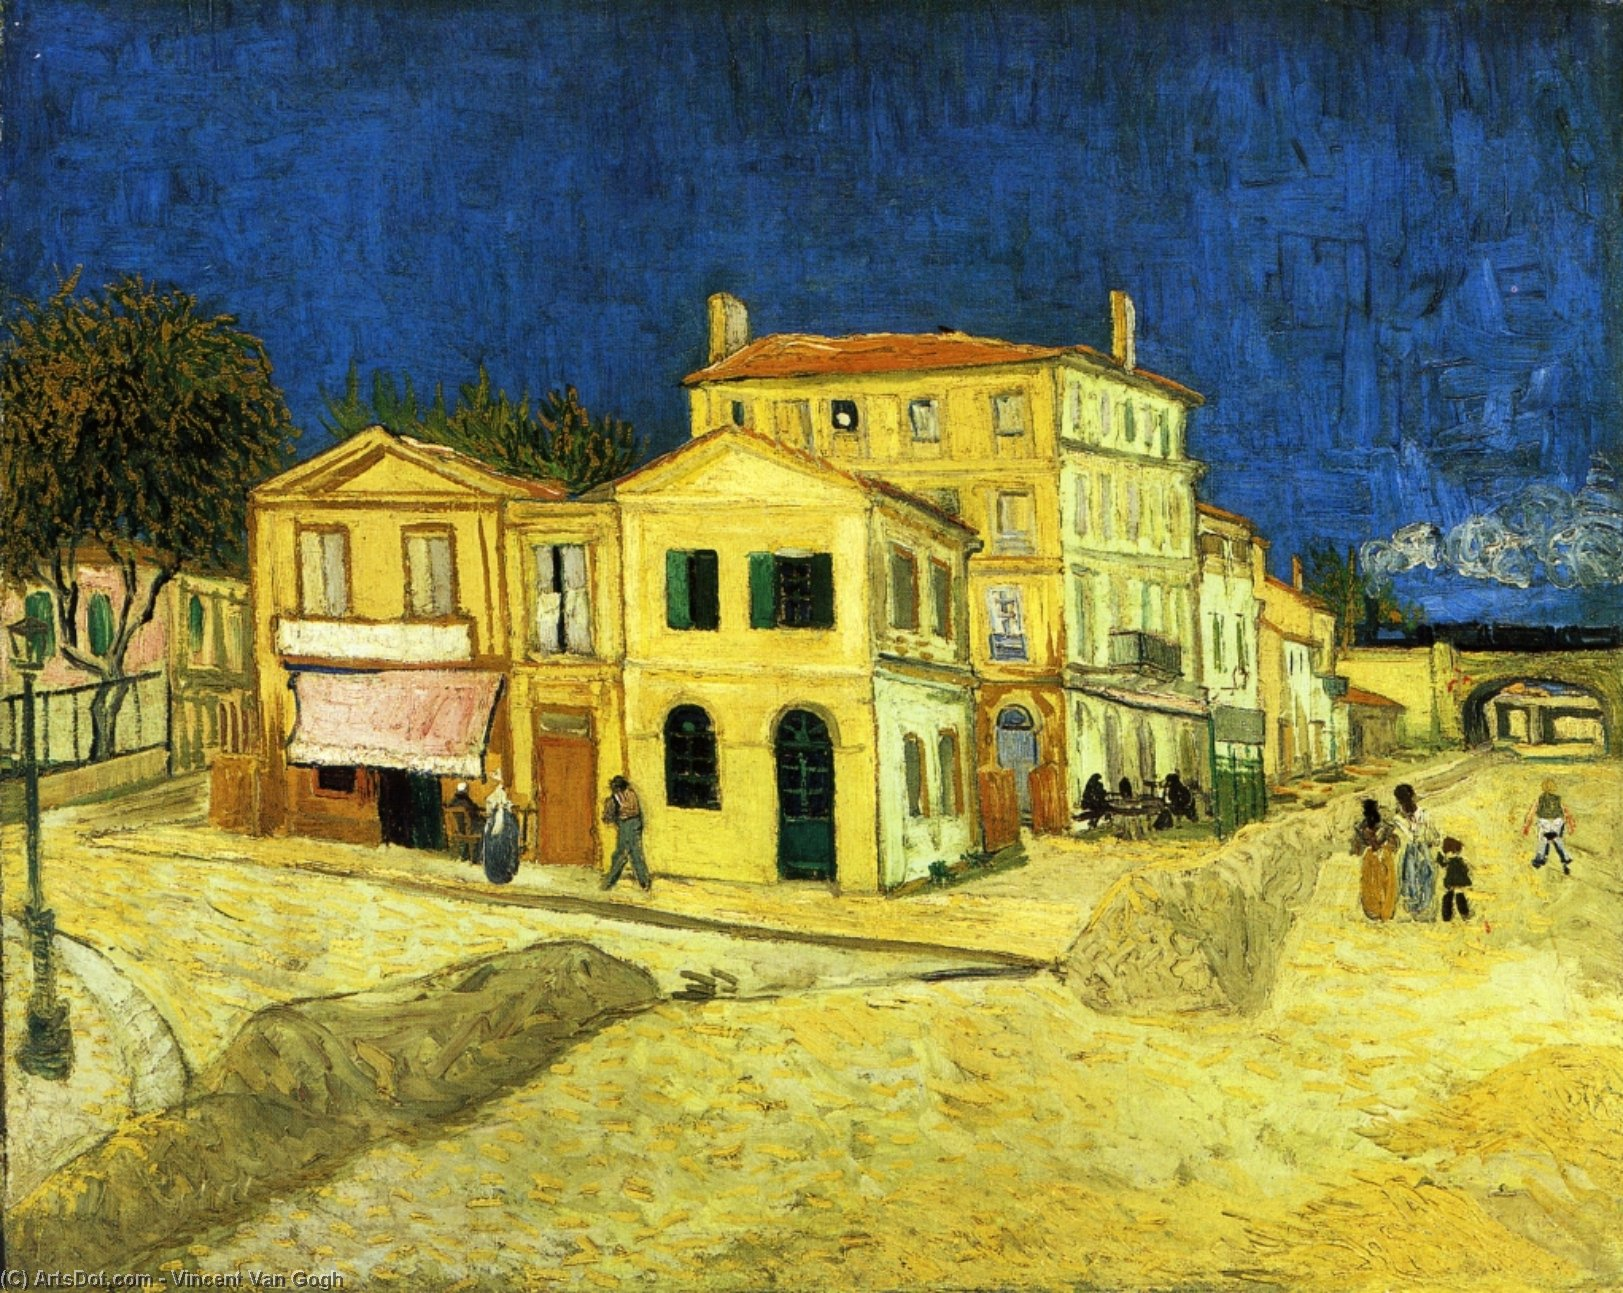 Wikioo.org - สารานุกรมวิจิตรศิลป์ - จิตรกรรม Vincent Van Gogh - The Street, the Yellow House